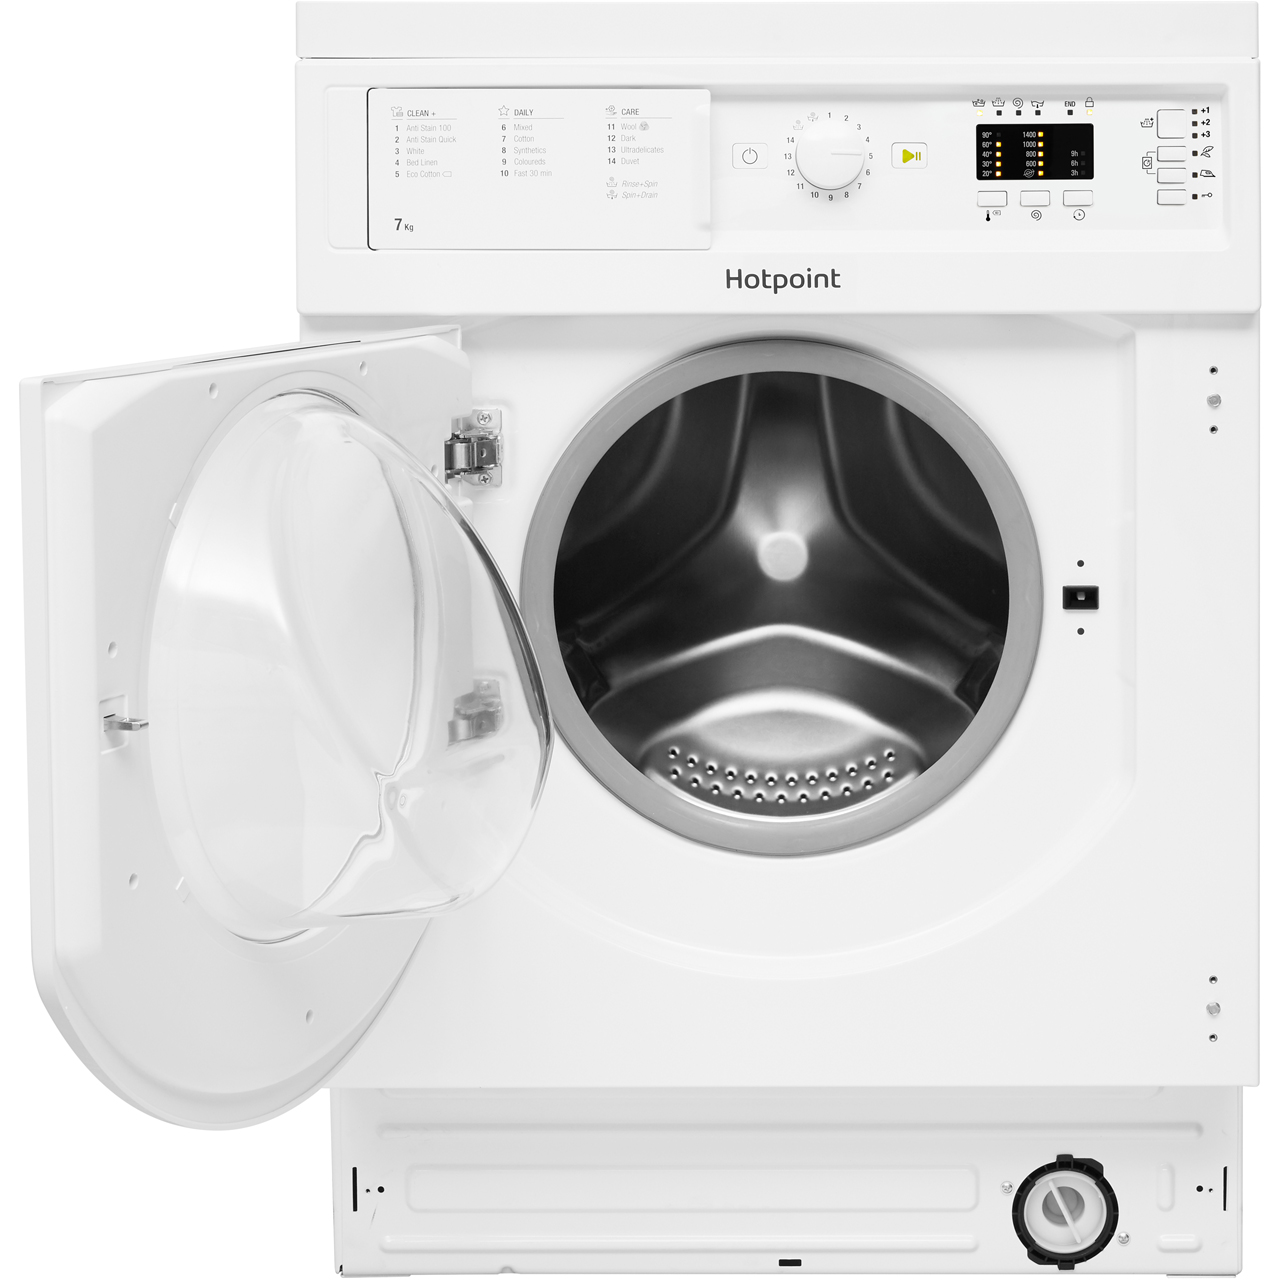 ... Hotpoint BIWDHL7128 Integrated 7Kg / 5Kg Washer Dryer with 1200 rpm - B Rated - BIWDHL7128_WH ...